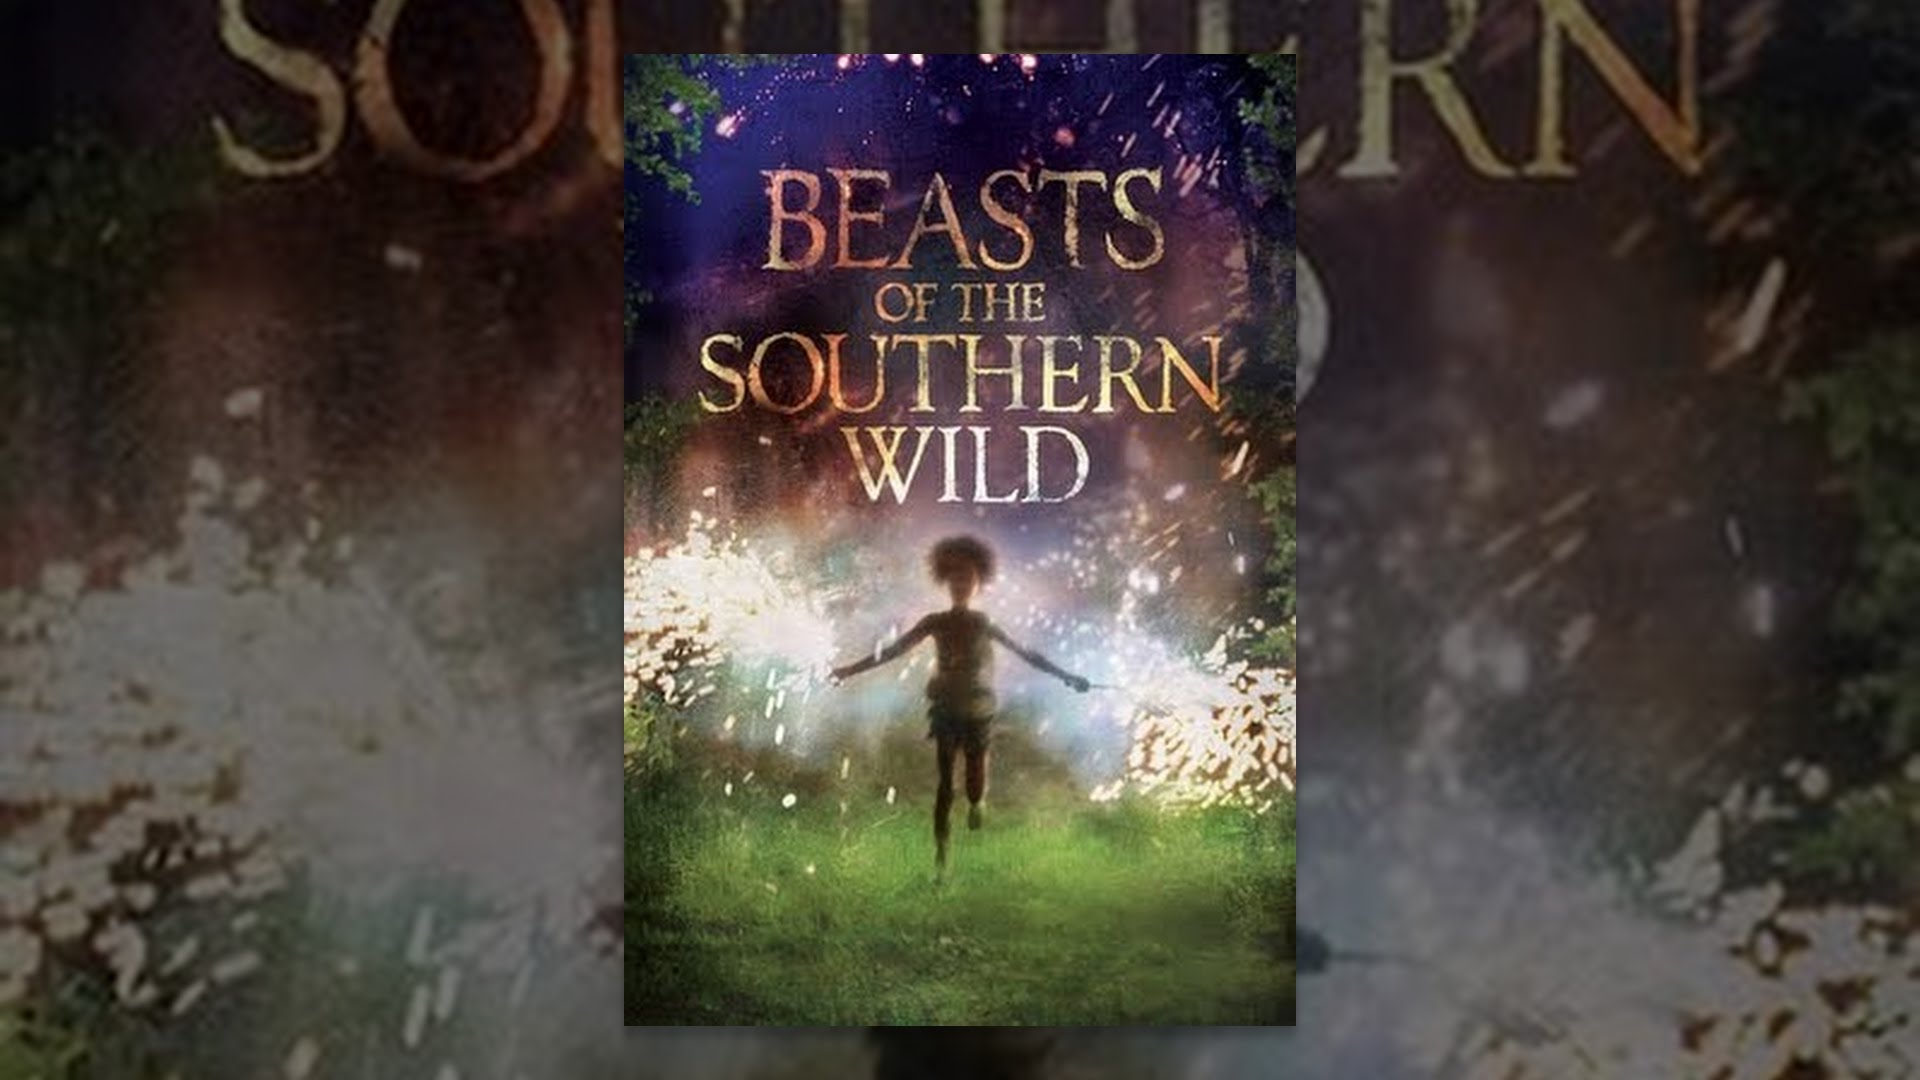 watch beasts of the southern wild full movie online free